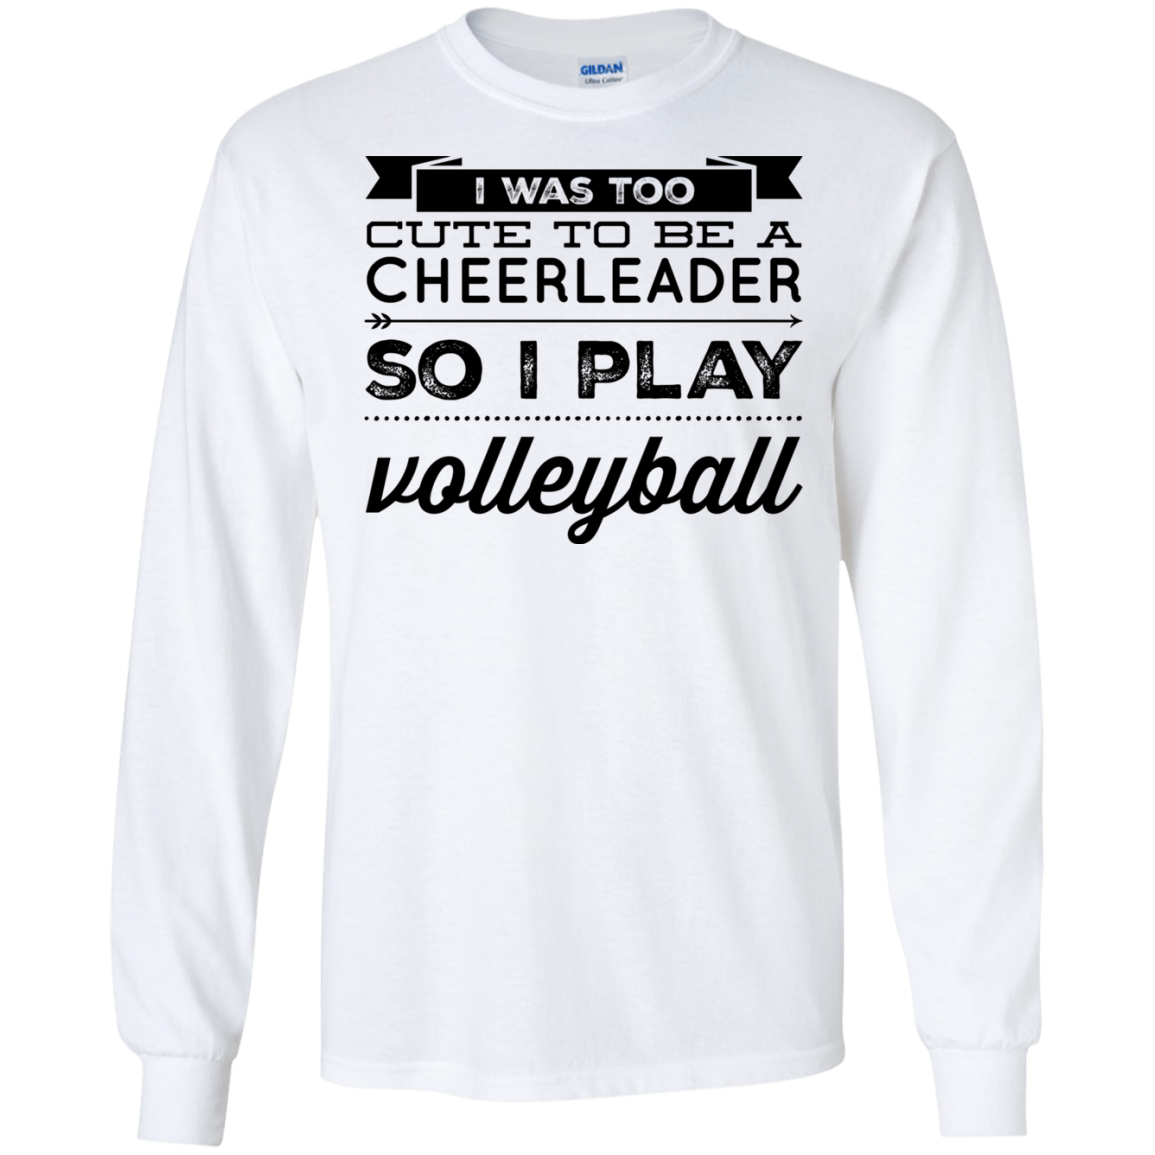 I wast too cute to be a cheerleader so i play volleyball LS Tshirt